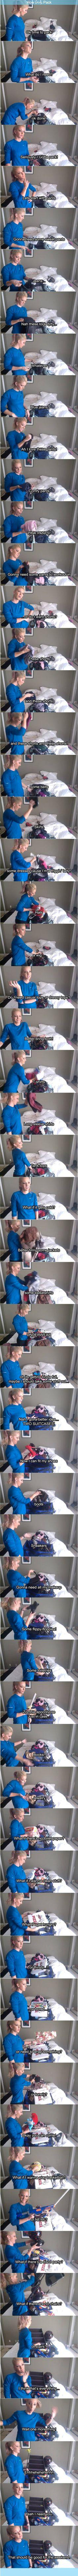 hahahahaha yessss: Giggle, Jennamarbles, Underwear, Jenna Marbles, Truth, Funny, So True, Things